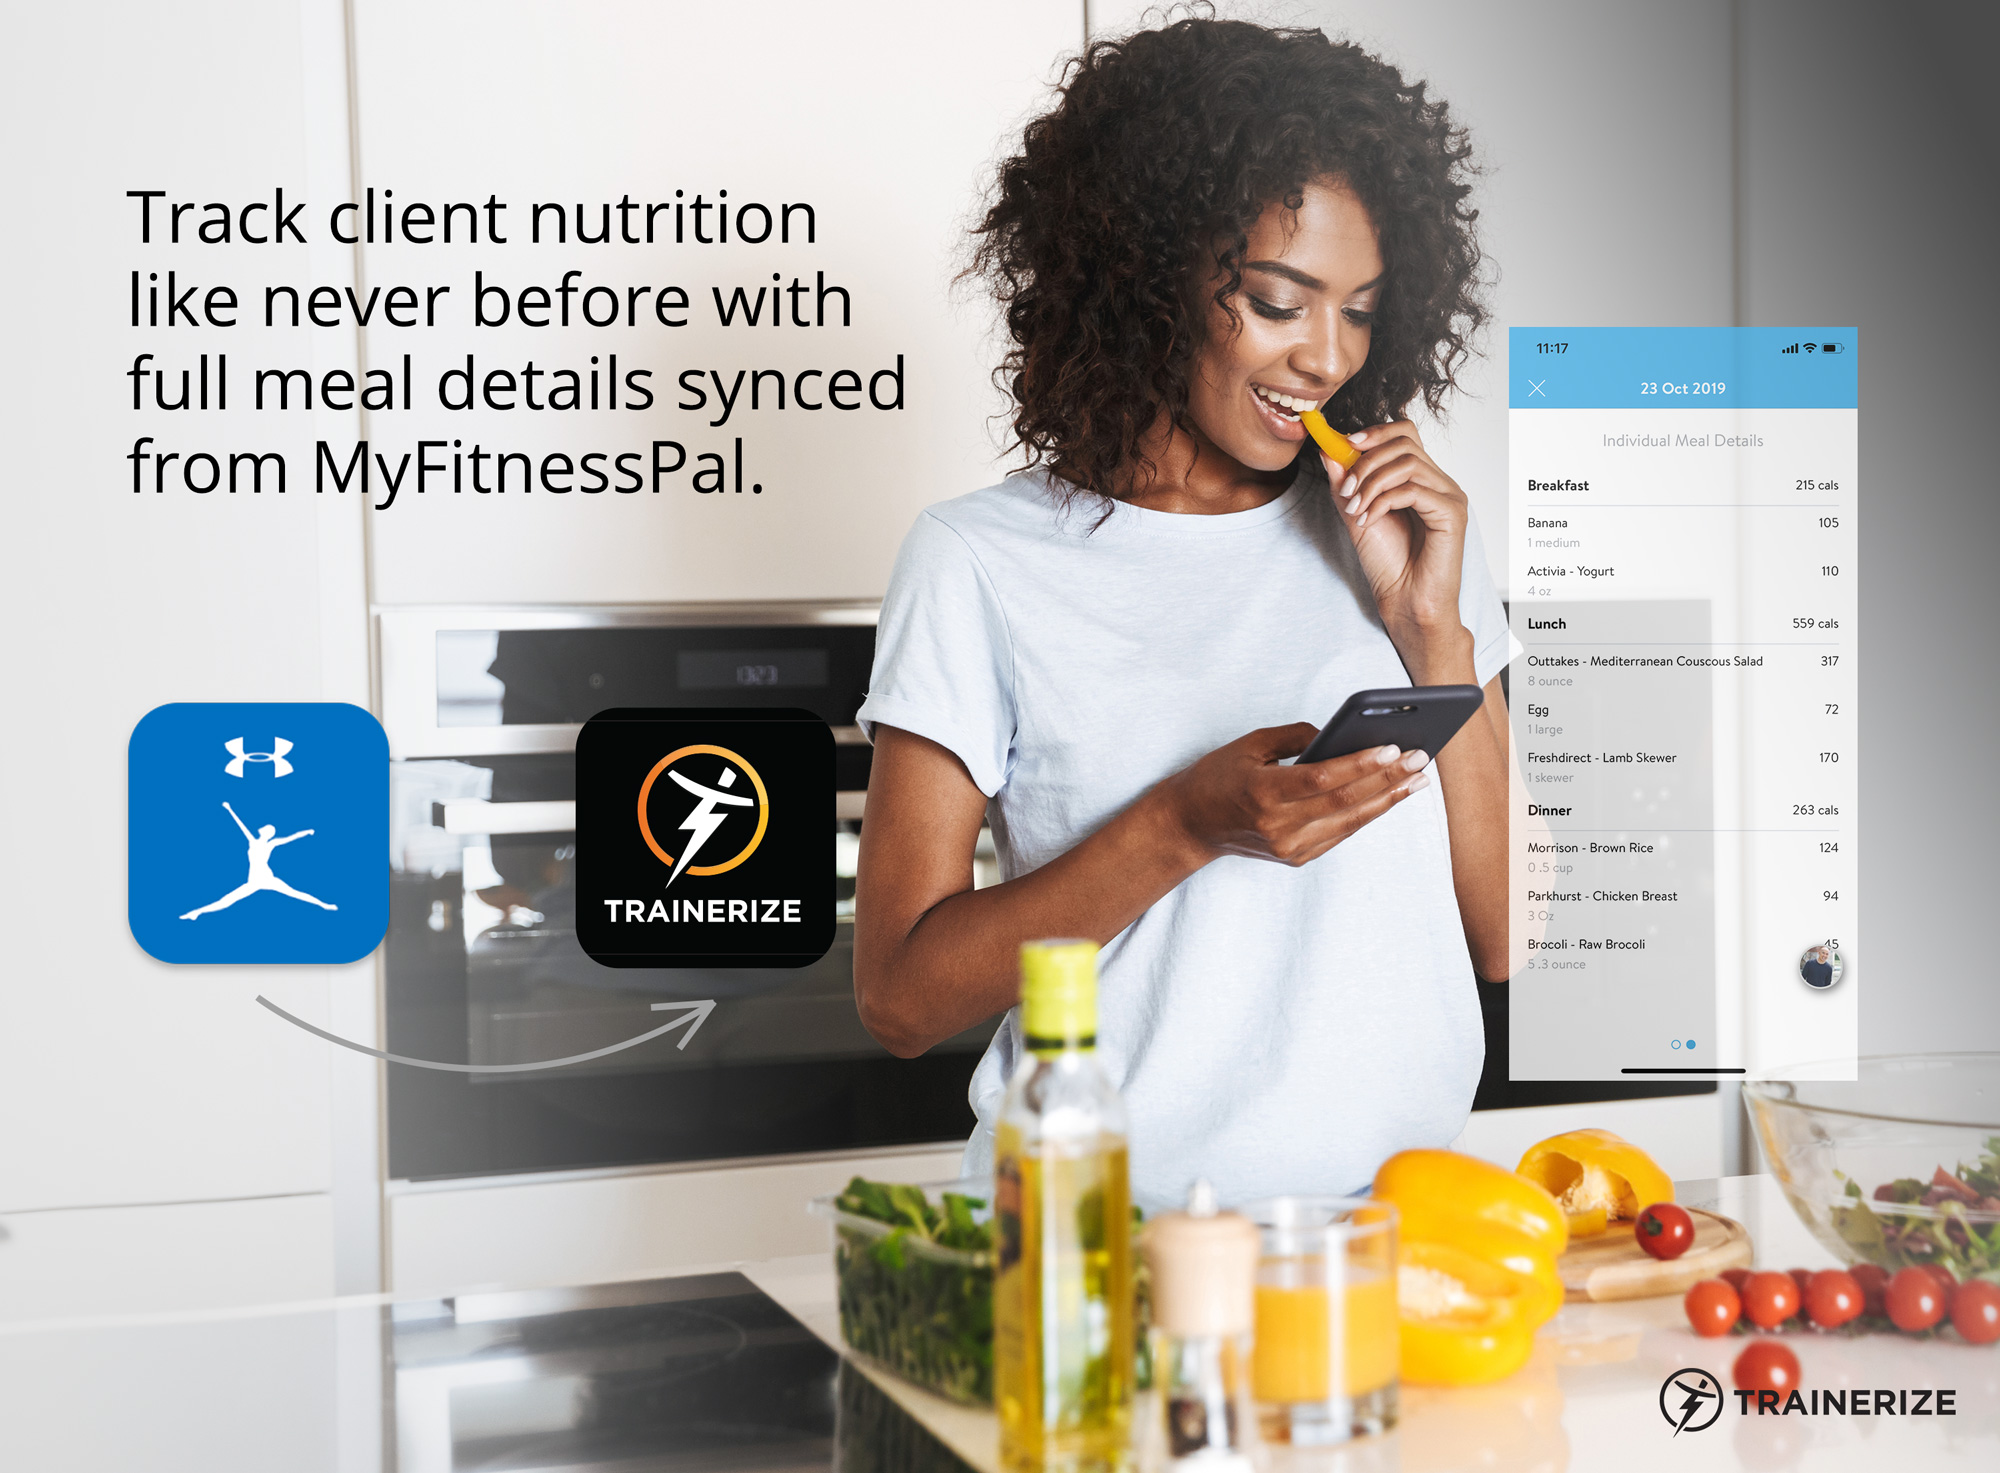 New in Trainerize: Full Meal Details Synced from MyFitnessPal